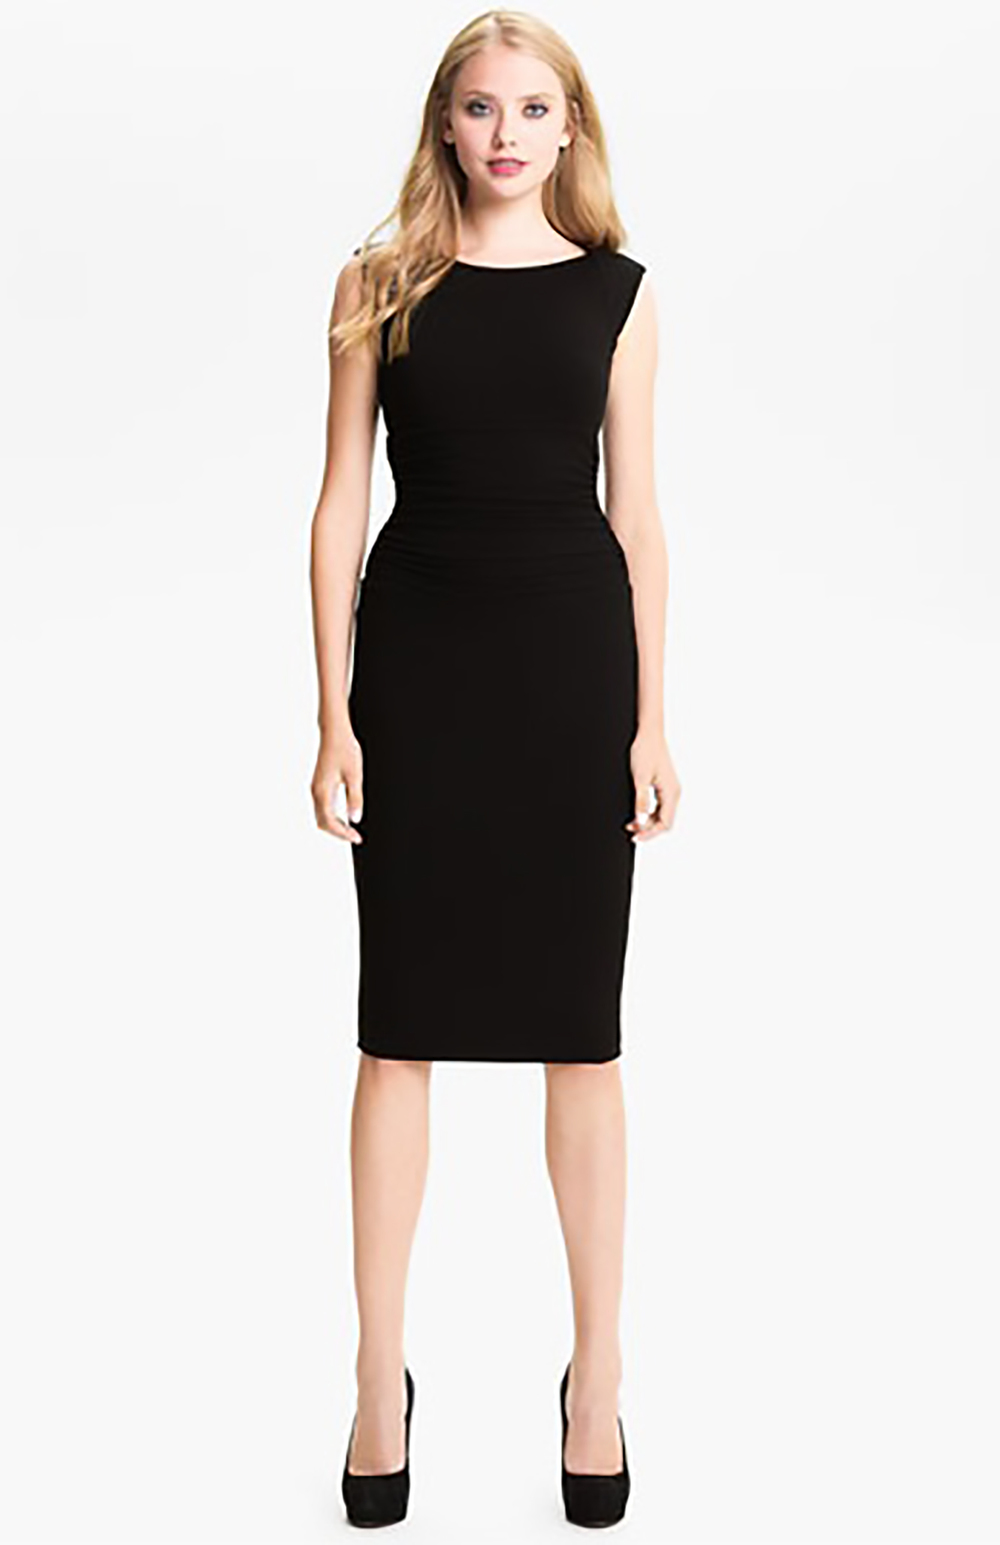 nordstrom B44 dressed by Bailey 44 ruched cap sleeve sheath dress sheath dress 1500.jpg